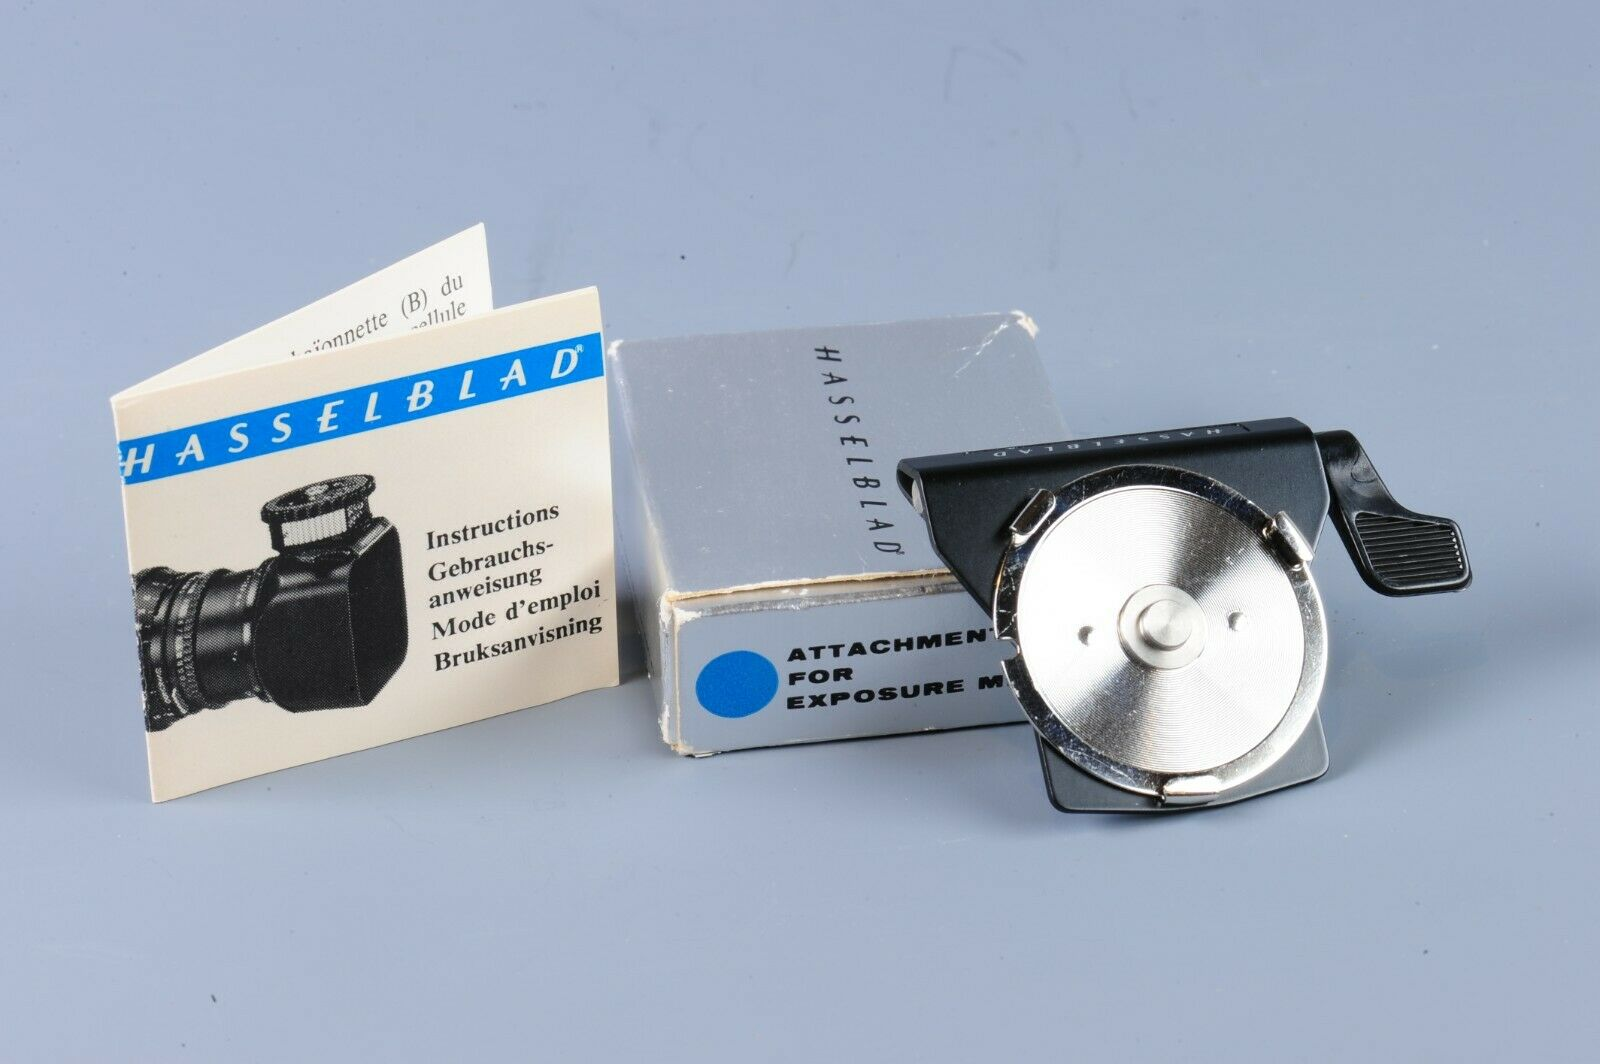 [ New ] Hasselblad attachment for expoure meter (40266) [ from Taiwan ]